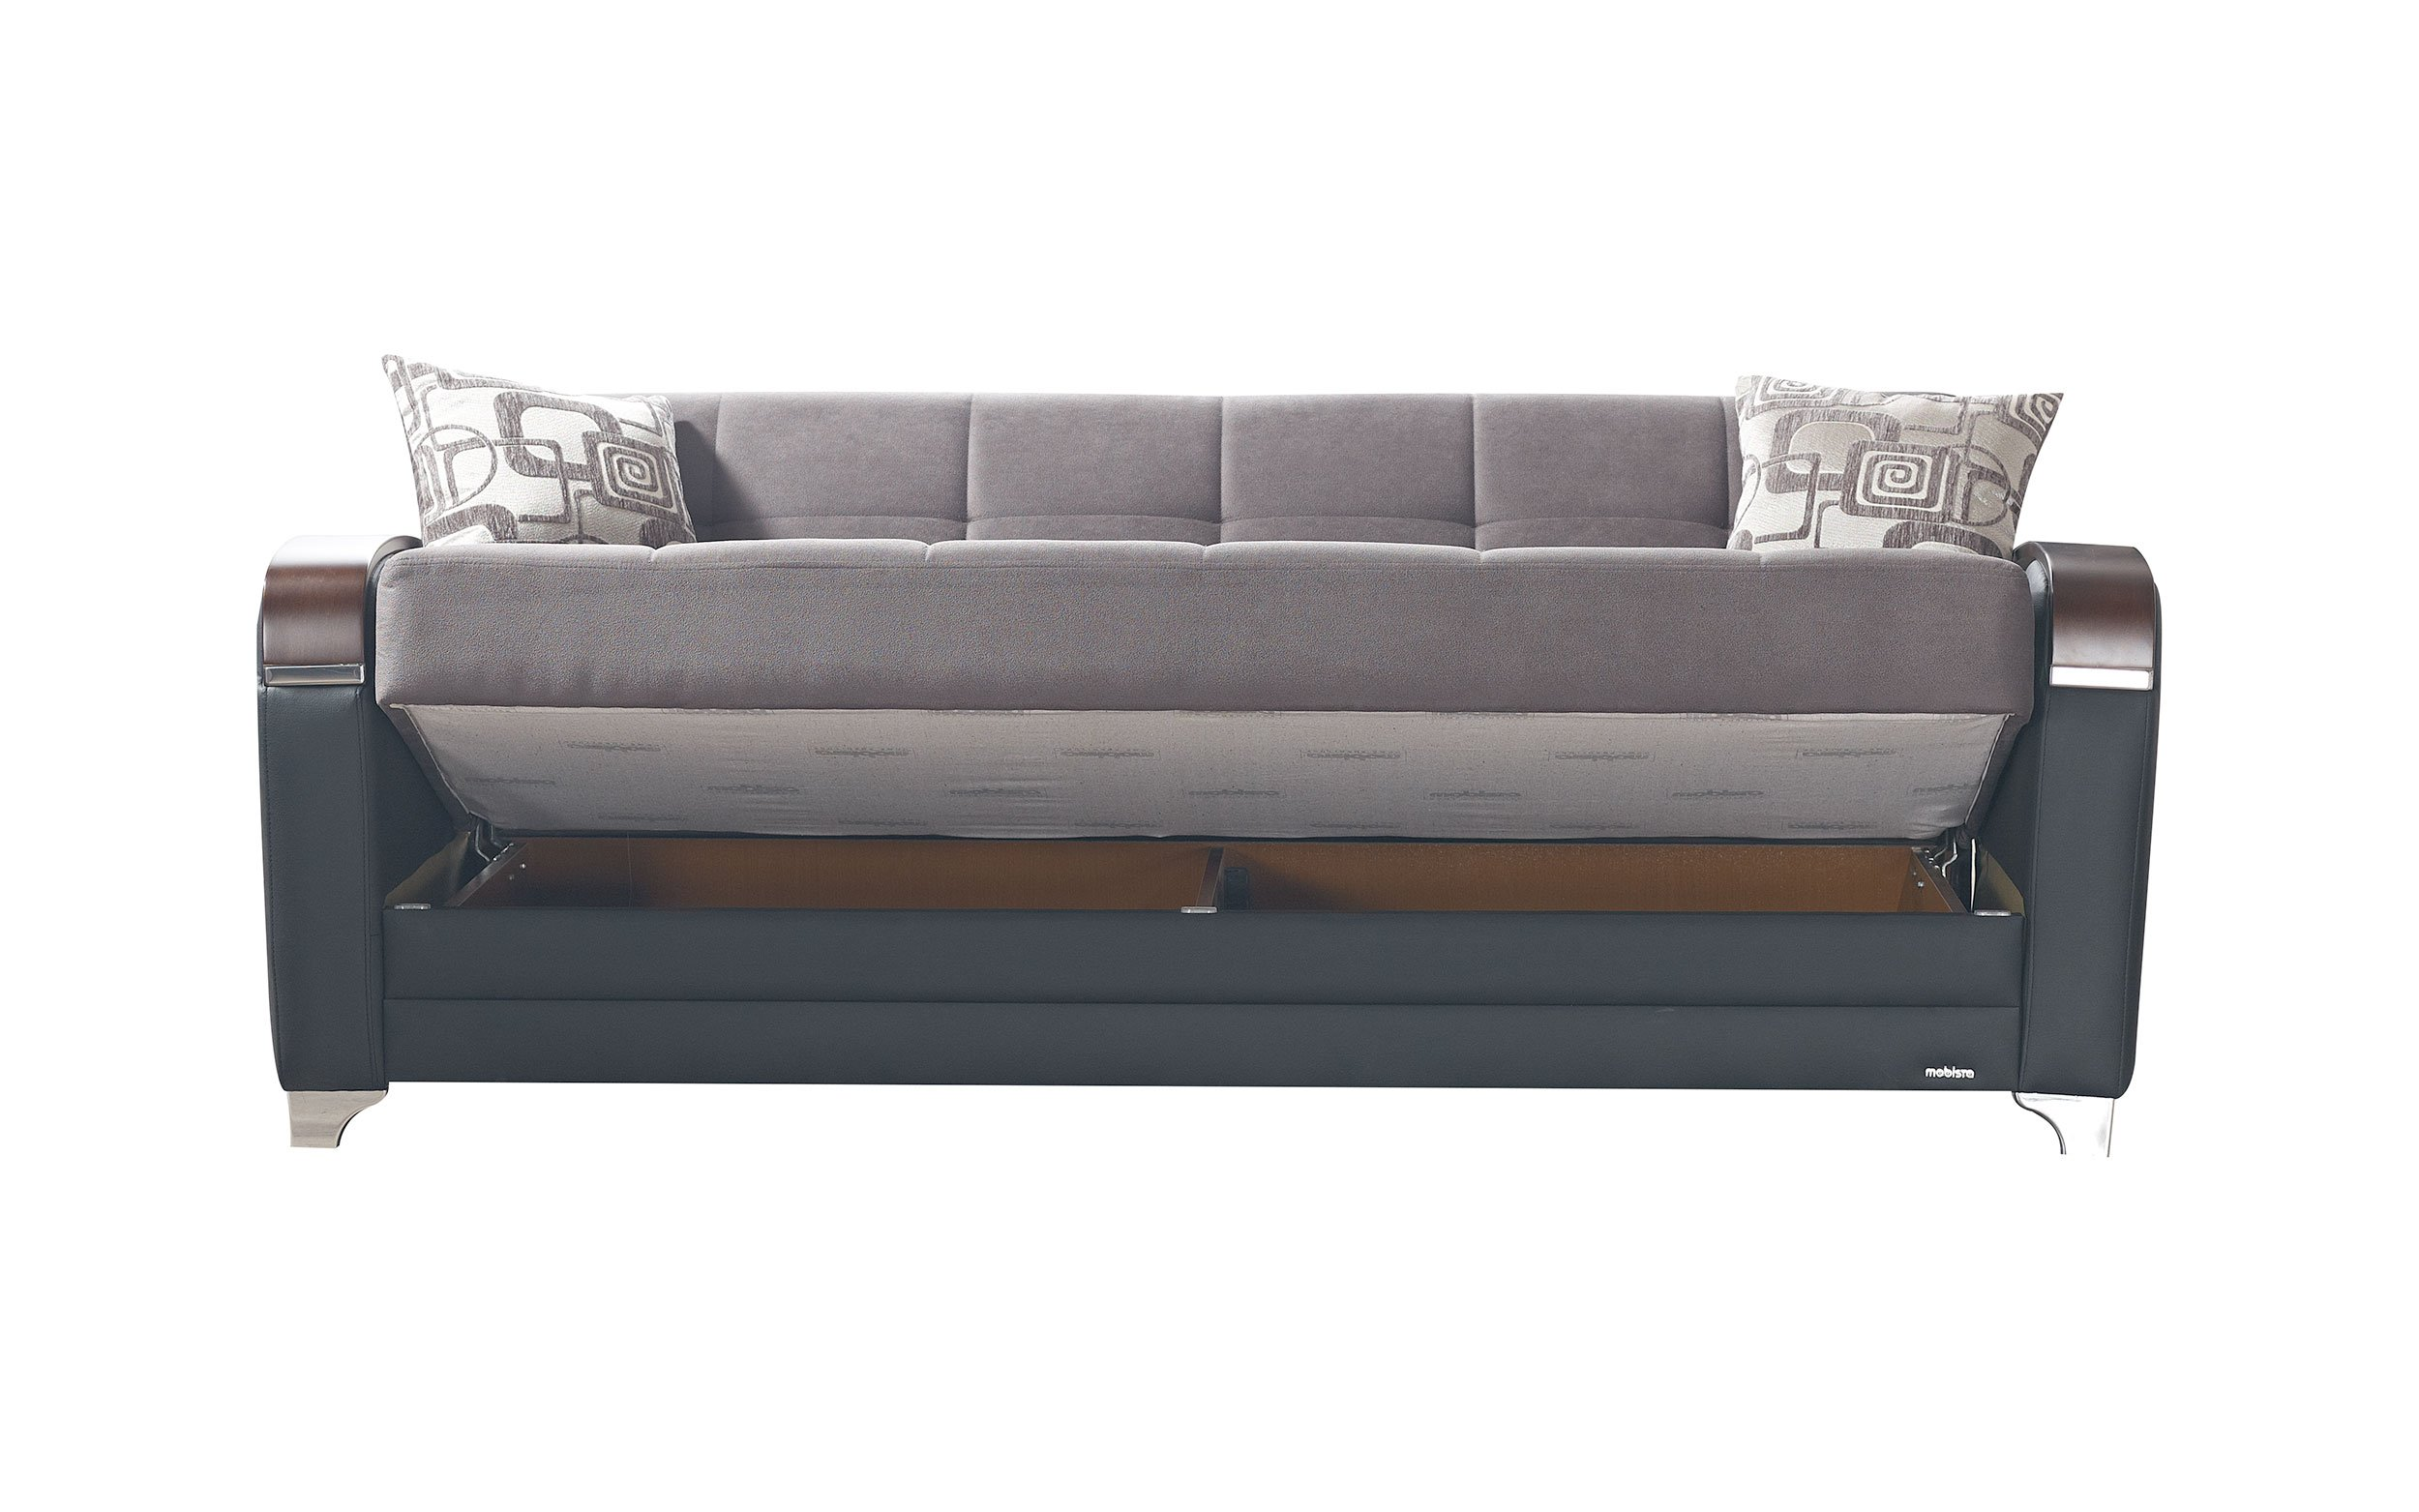 Etro Vintage Gray Fabric Sofa Bed by Mobista